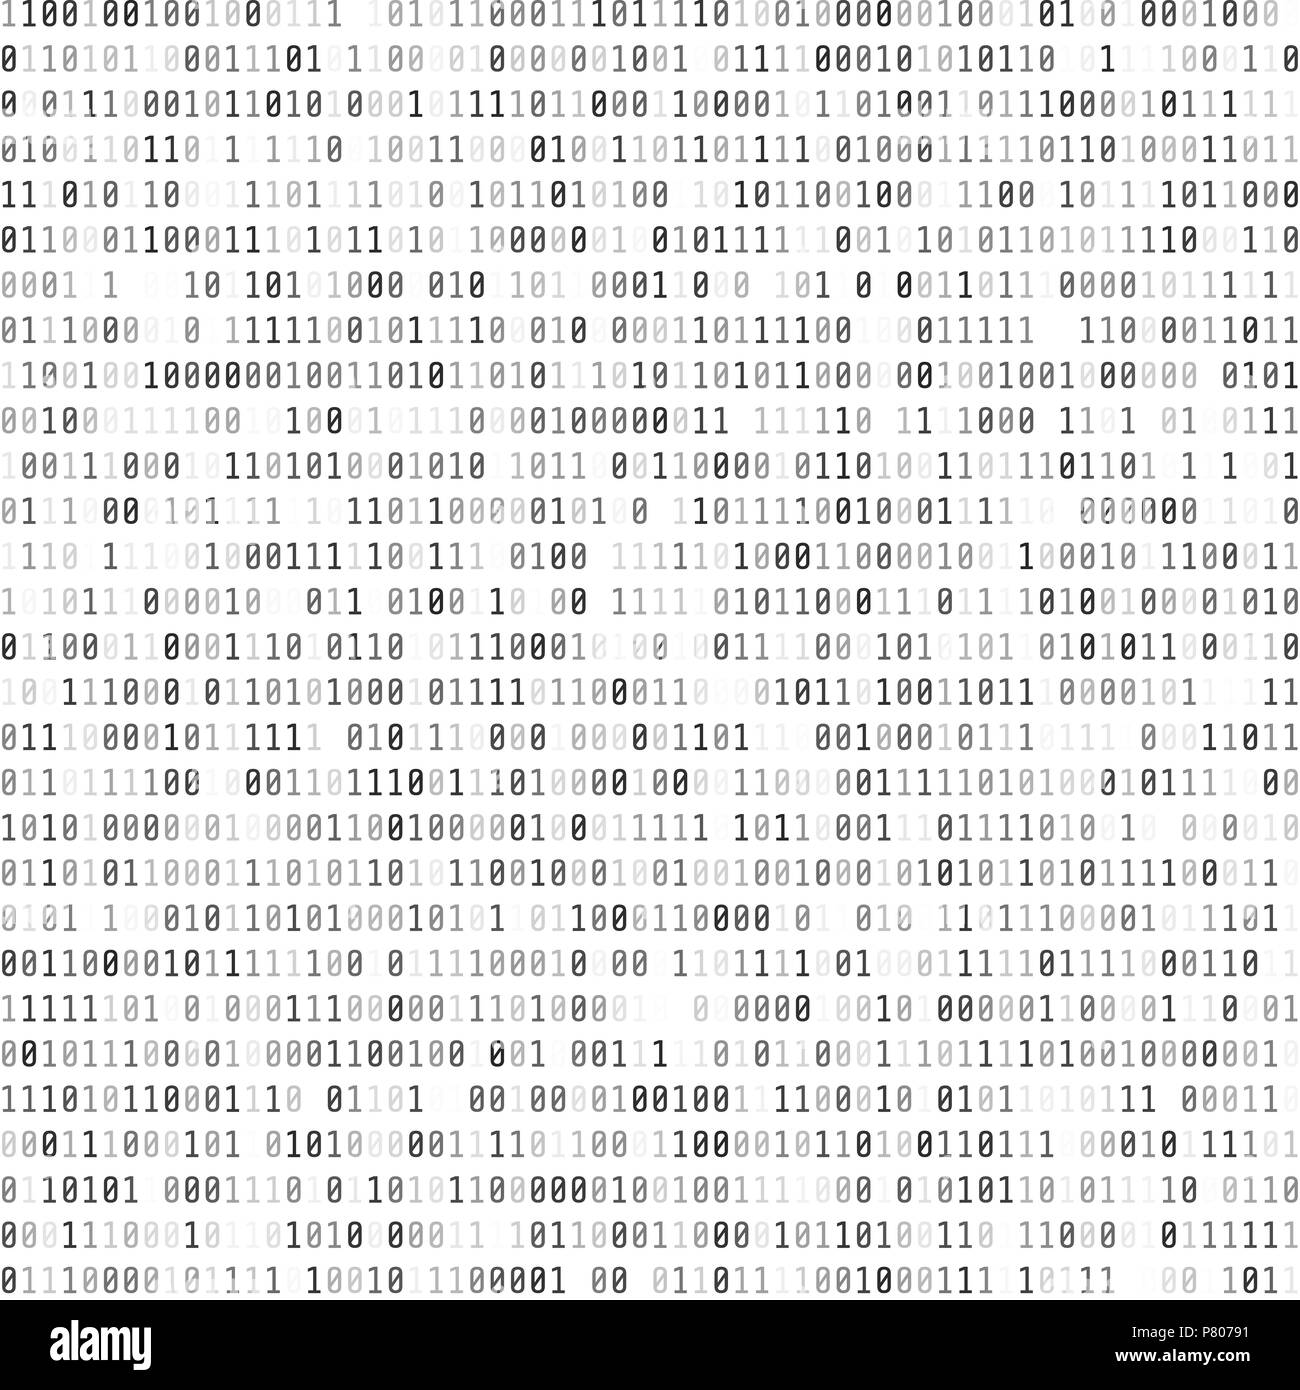 Binary Computer Code. Digital Data Stream. Abstract Matrix Background. Cyber security. Hacker concept. Vector Illustration - Stock Image